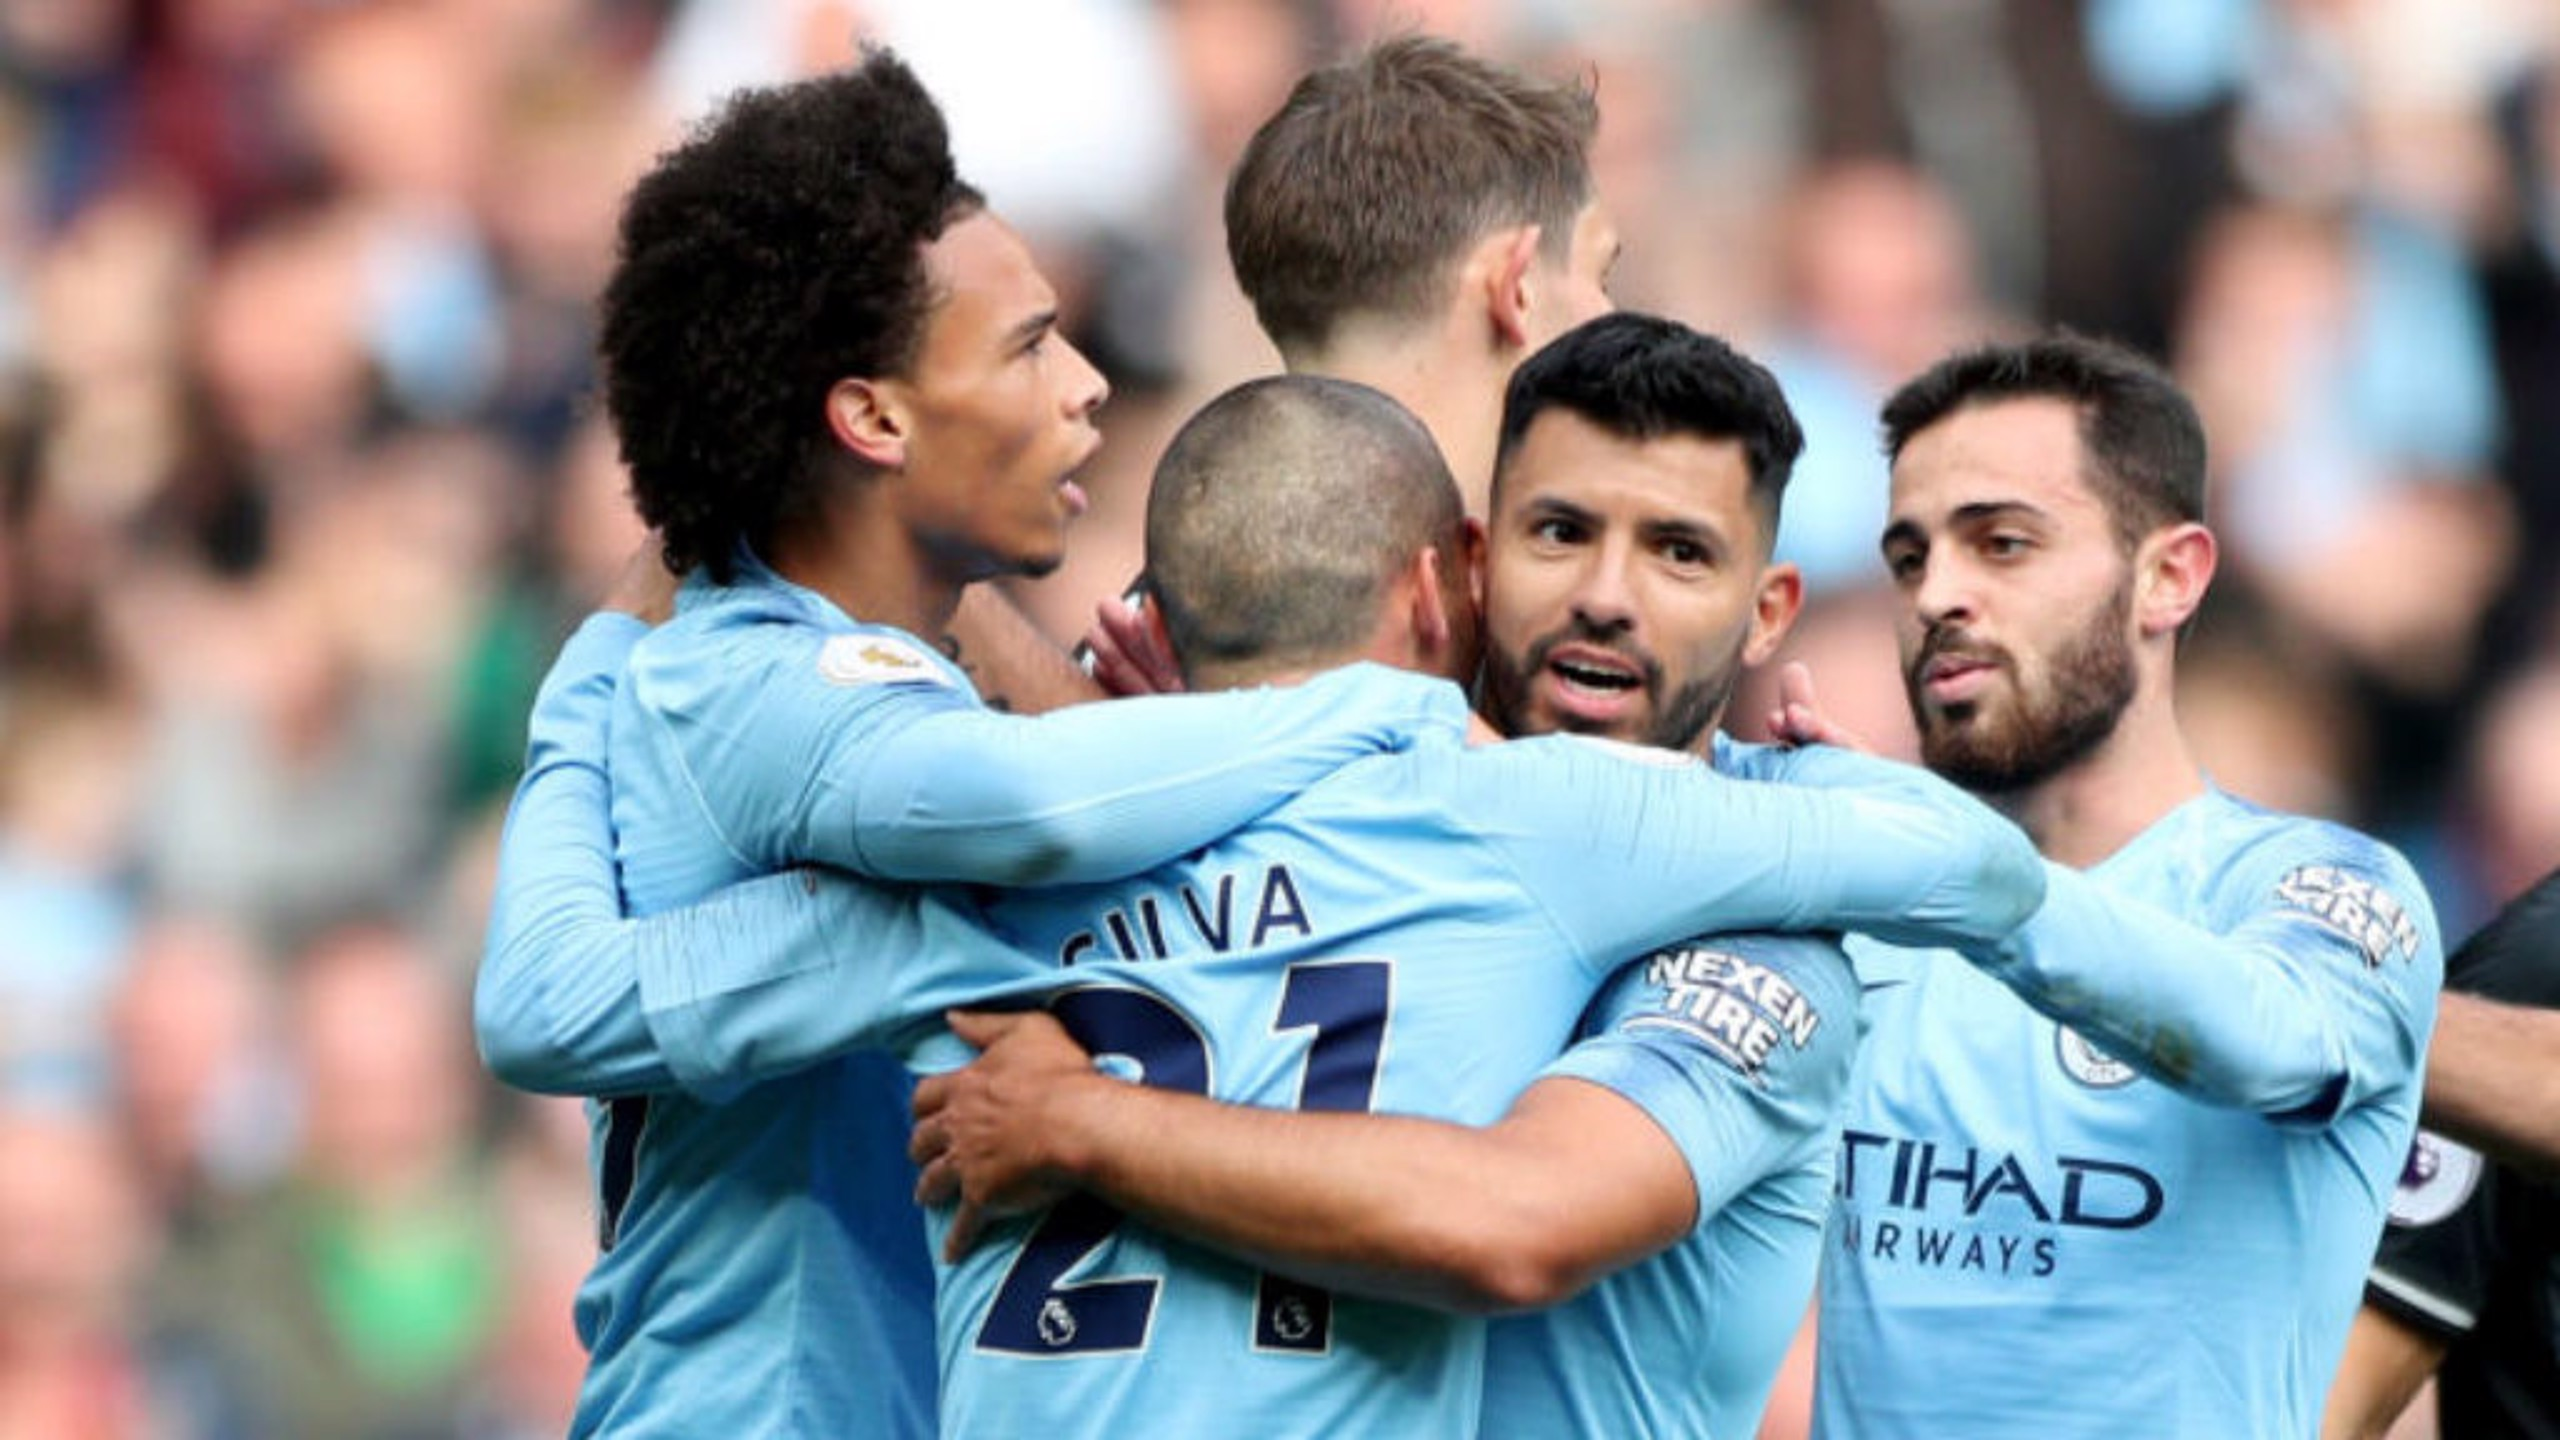 GIVE US A HUG: Sergio celebrates with his team-mates after his early strike